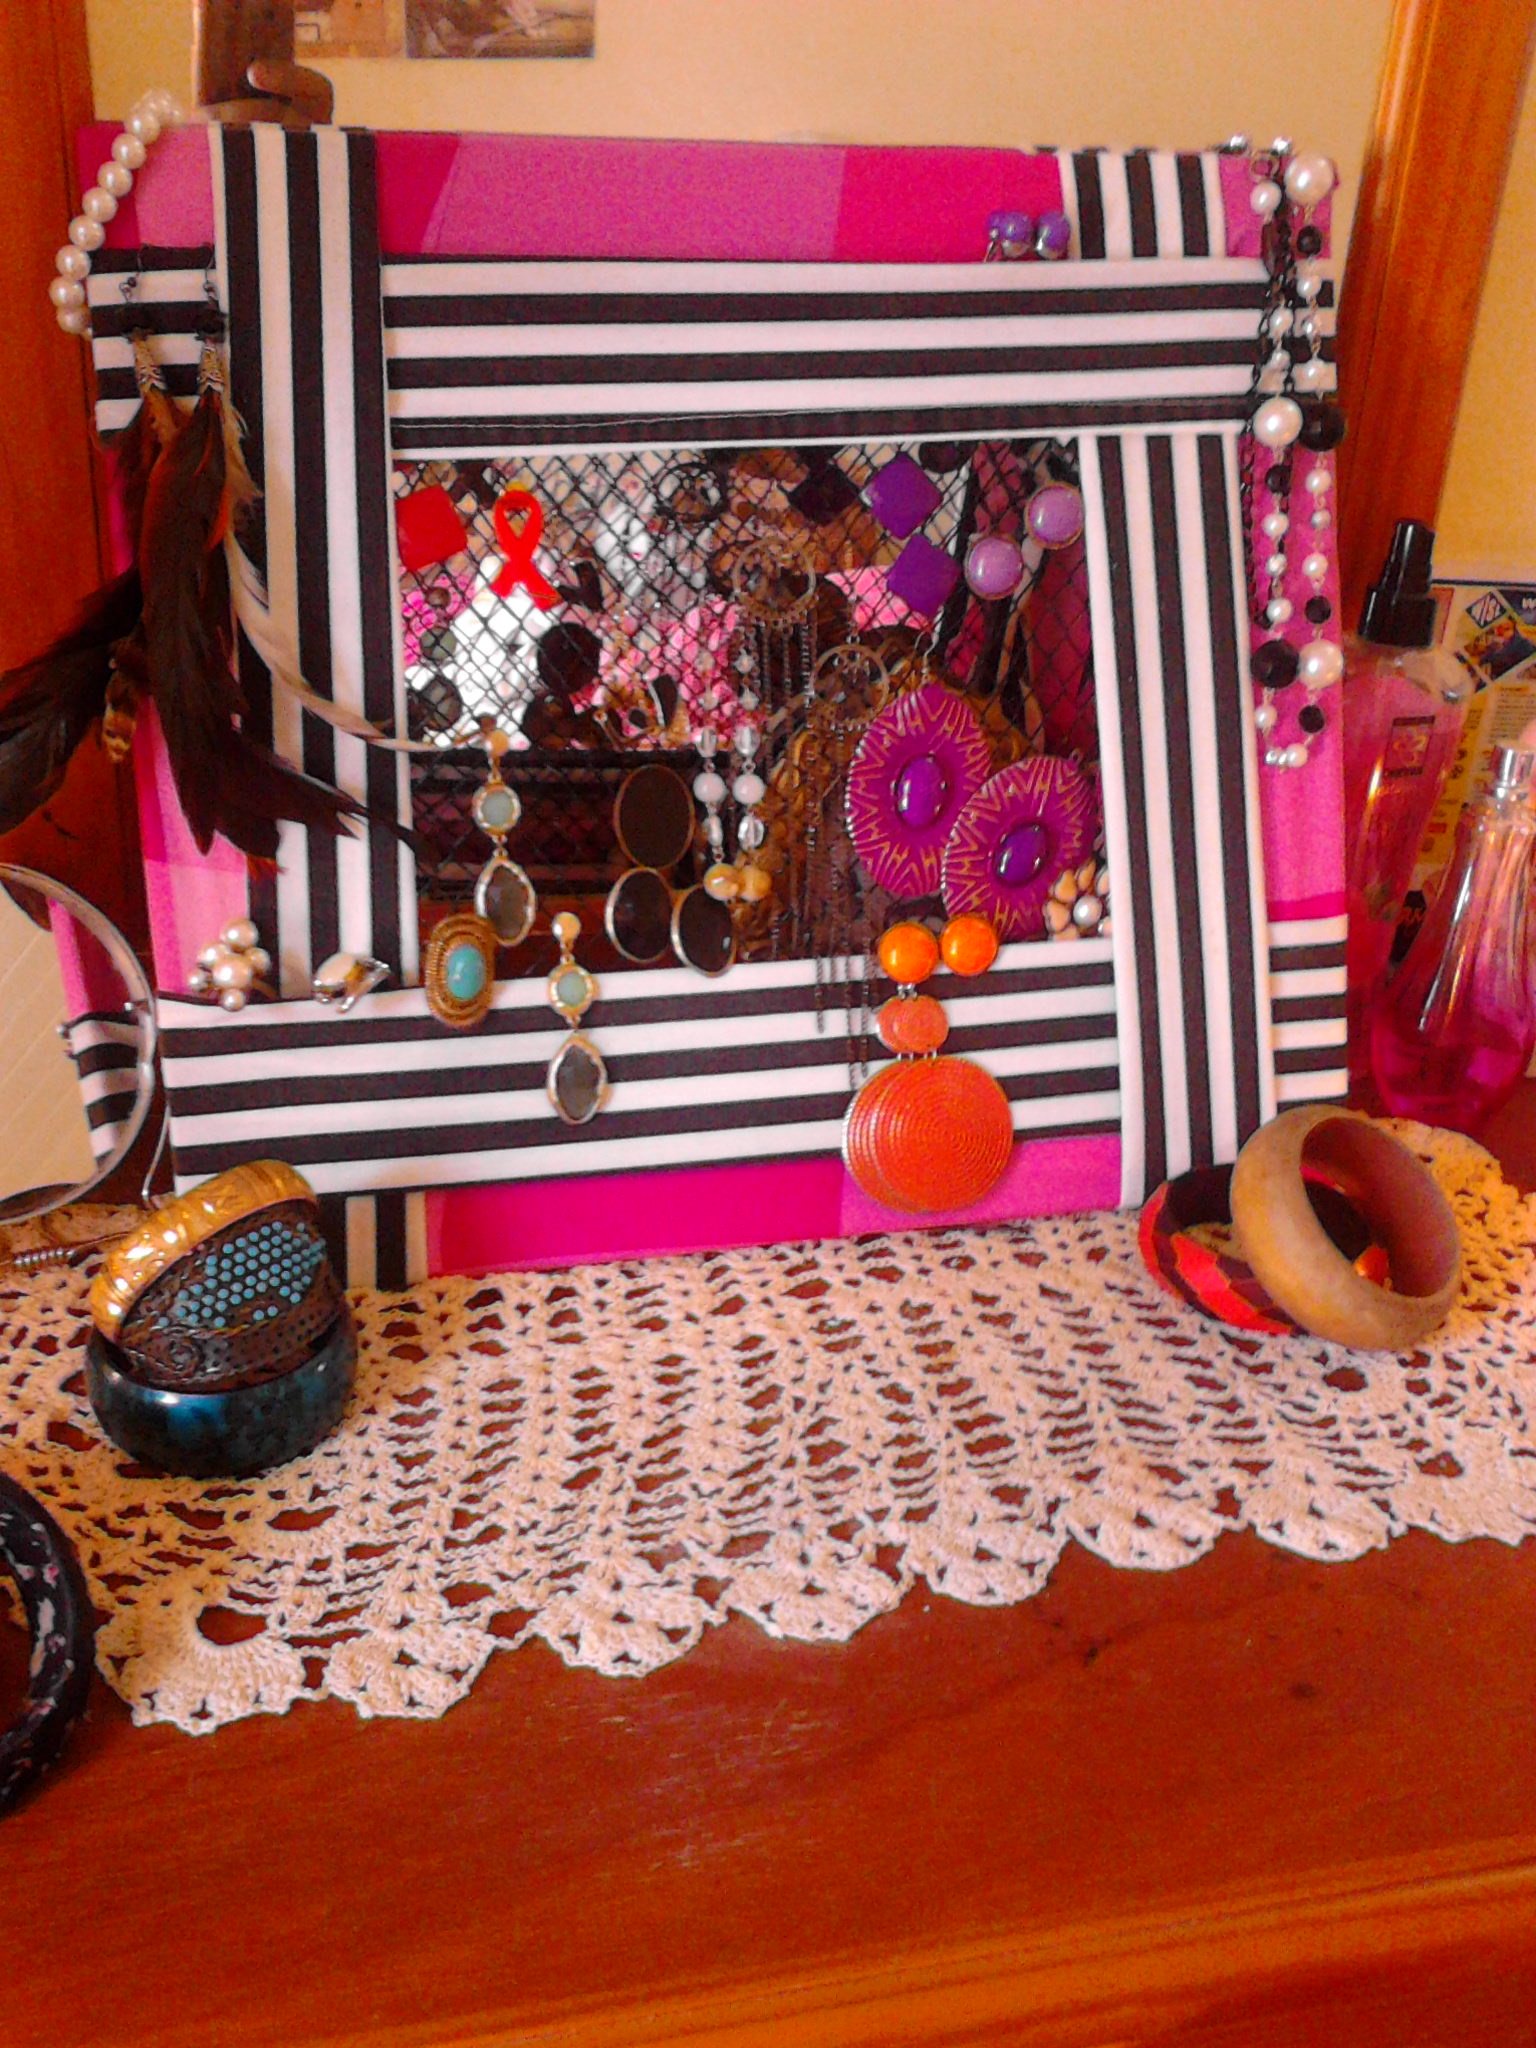 Ugly picture frame upcycled to jewellery organizer